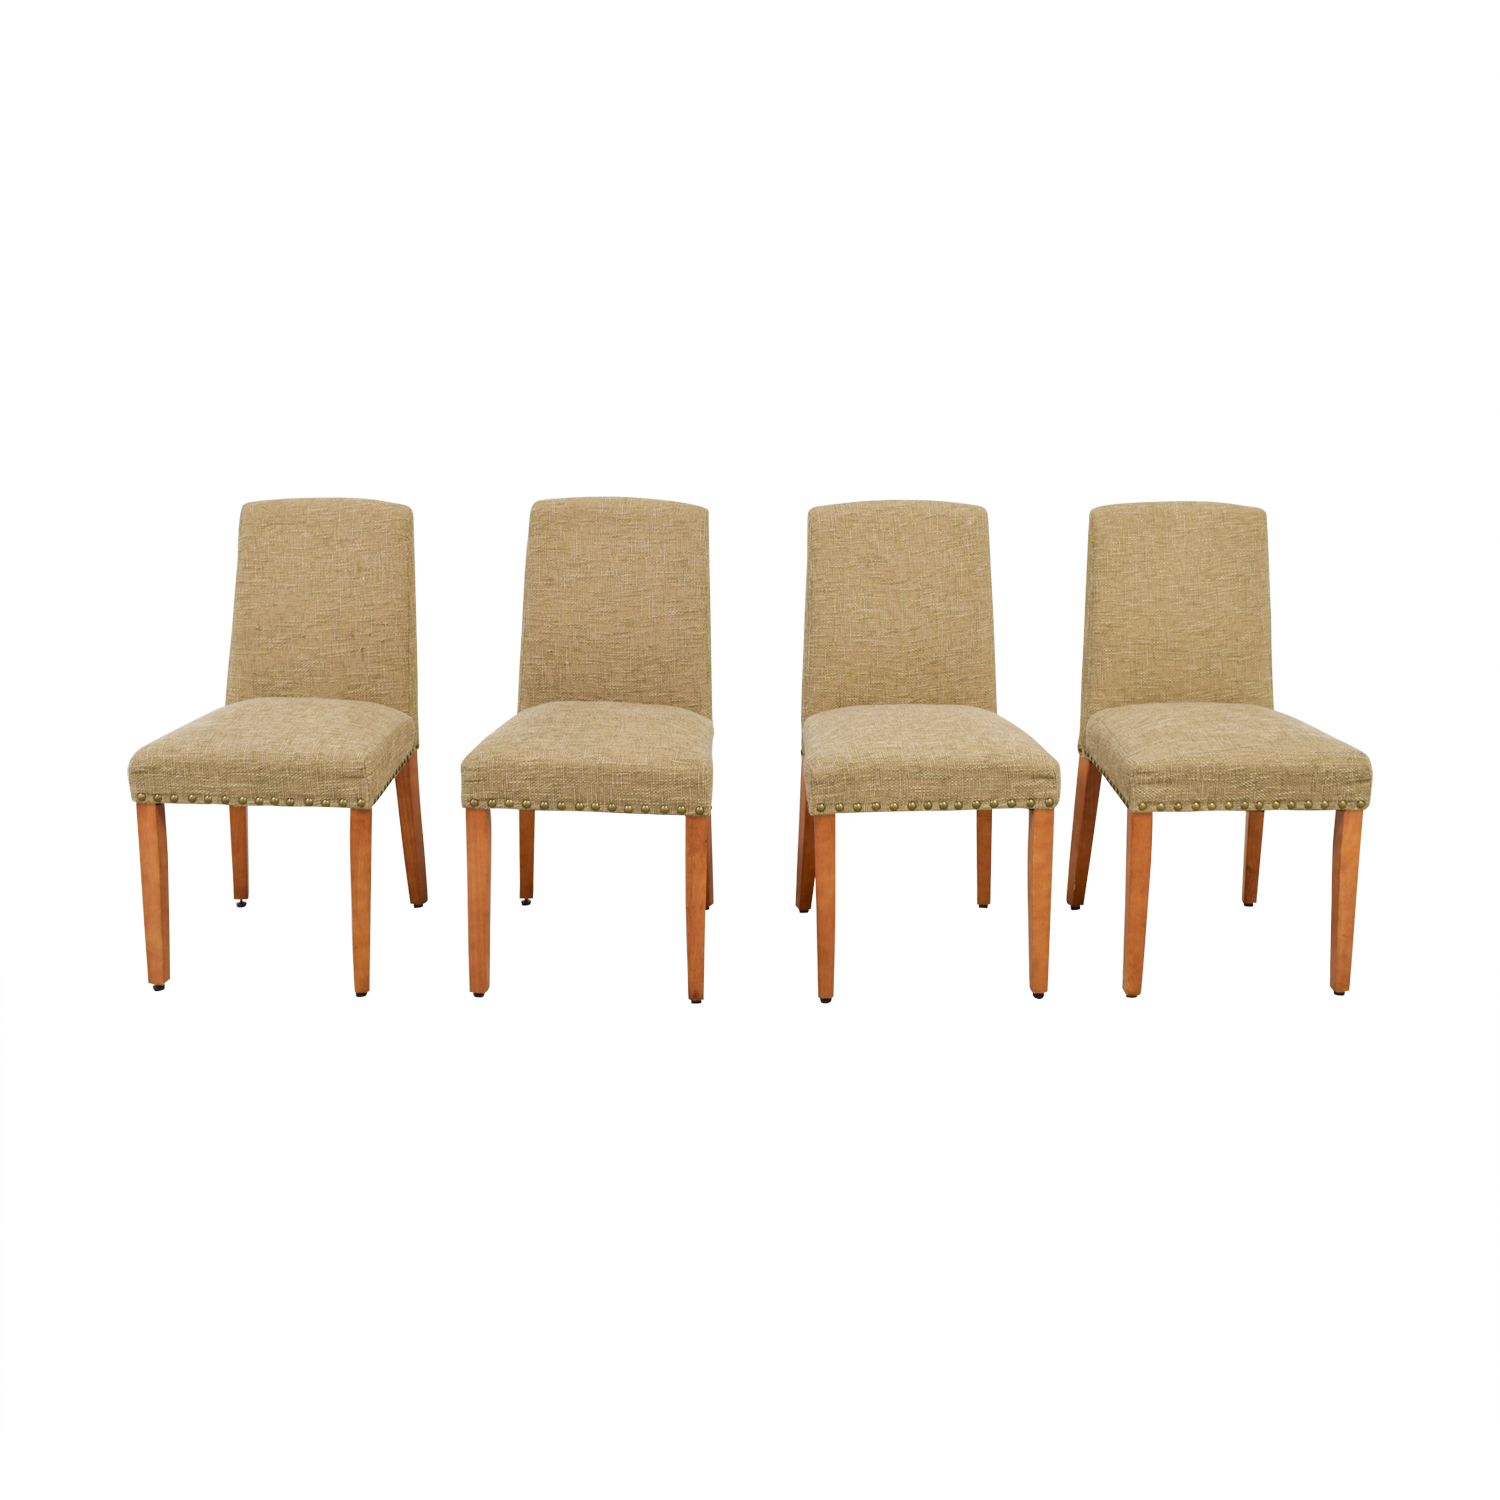 Target Target Dining Chairs dimensions